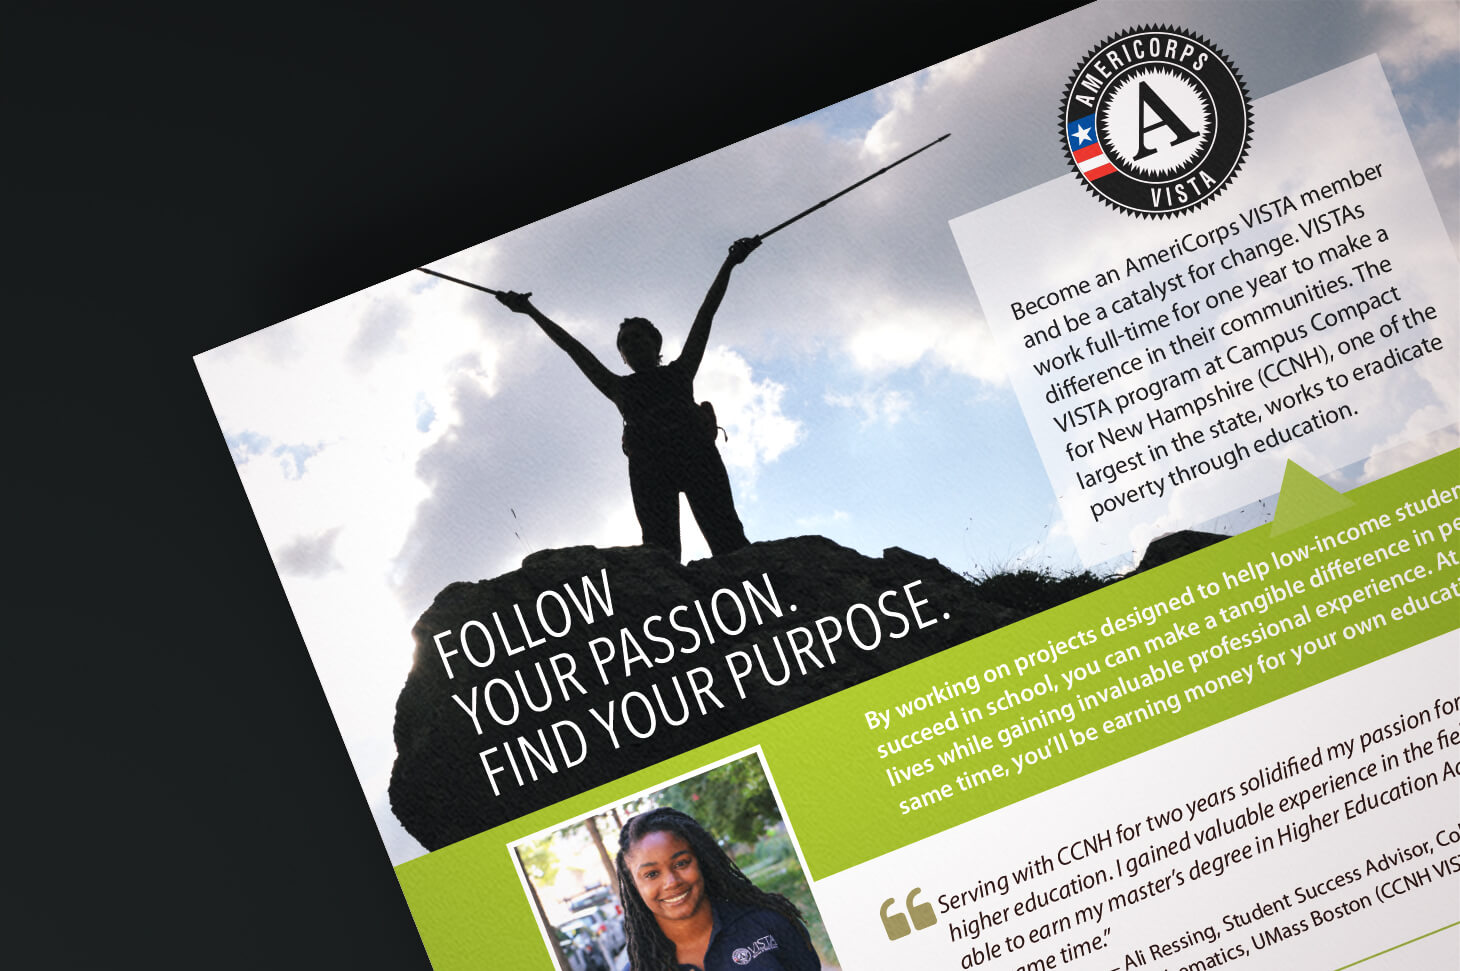 promotional materials for a higher education organization